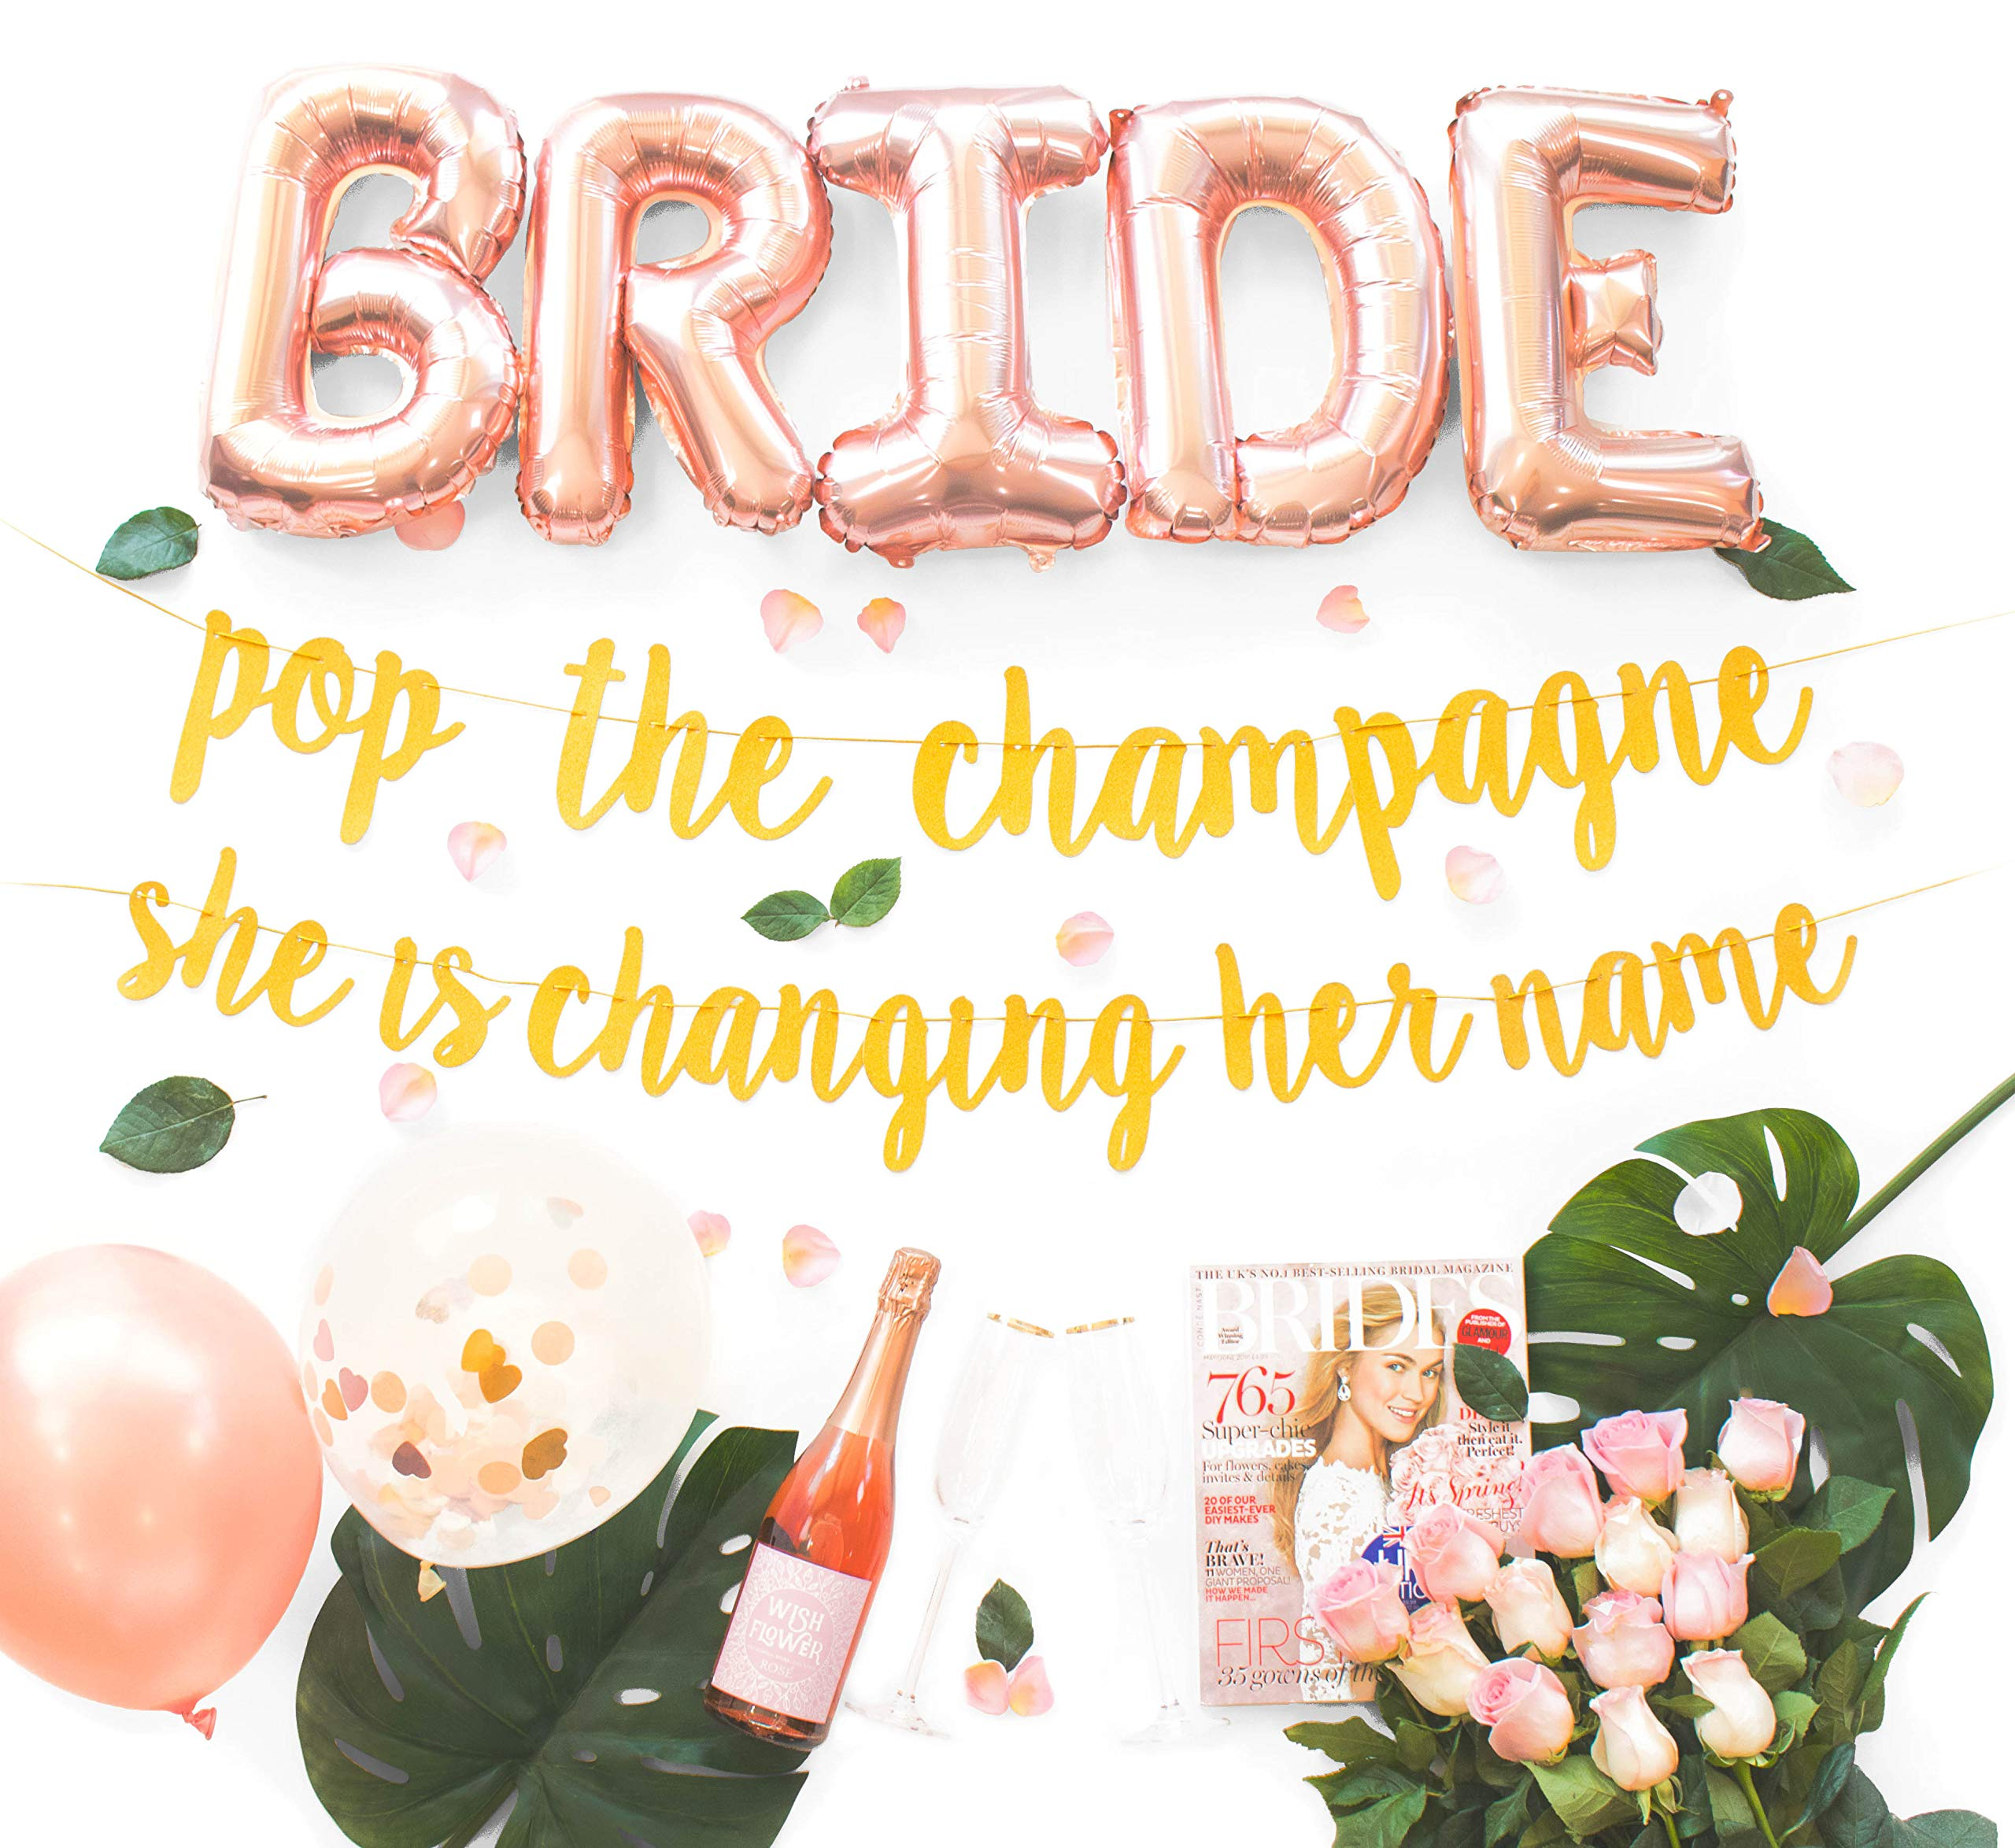 Malibu Moments Bachelorette Party Decorations Kit | Bridal Shower Supplies | Bride to Be Sash, Ring Foil, Rose Balloons, Gold Glitter Banner | Pop The Champagne She is Changing Her Name by Malibu Moments